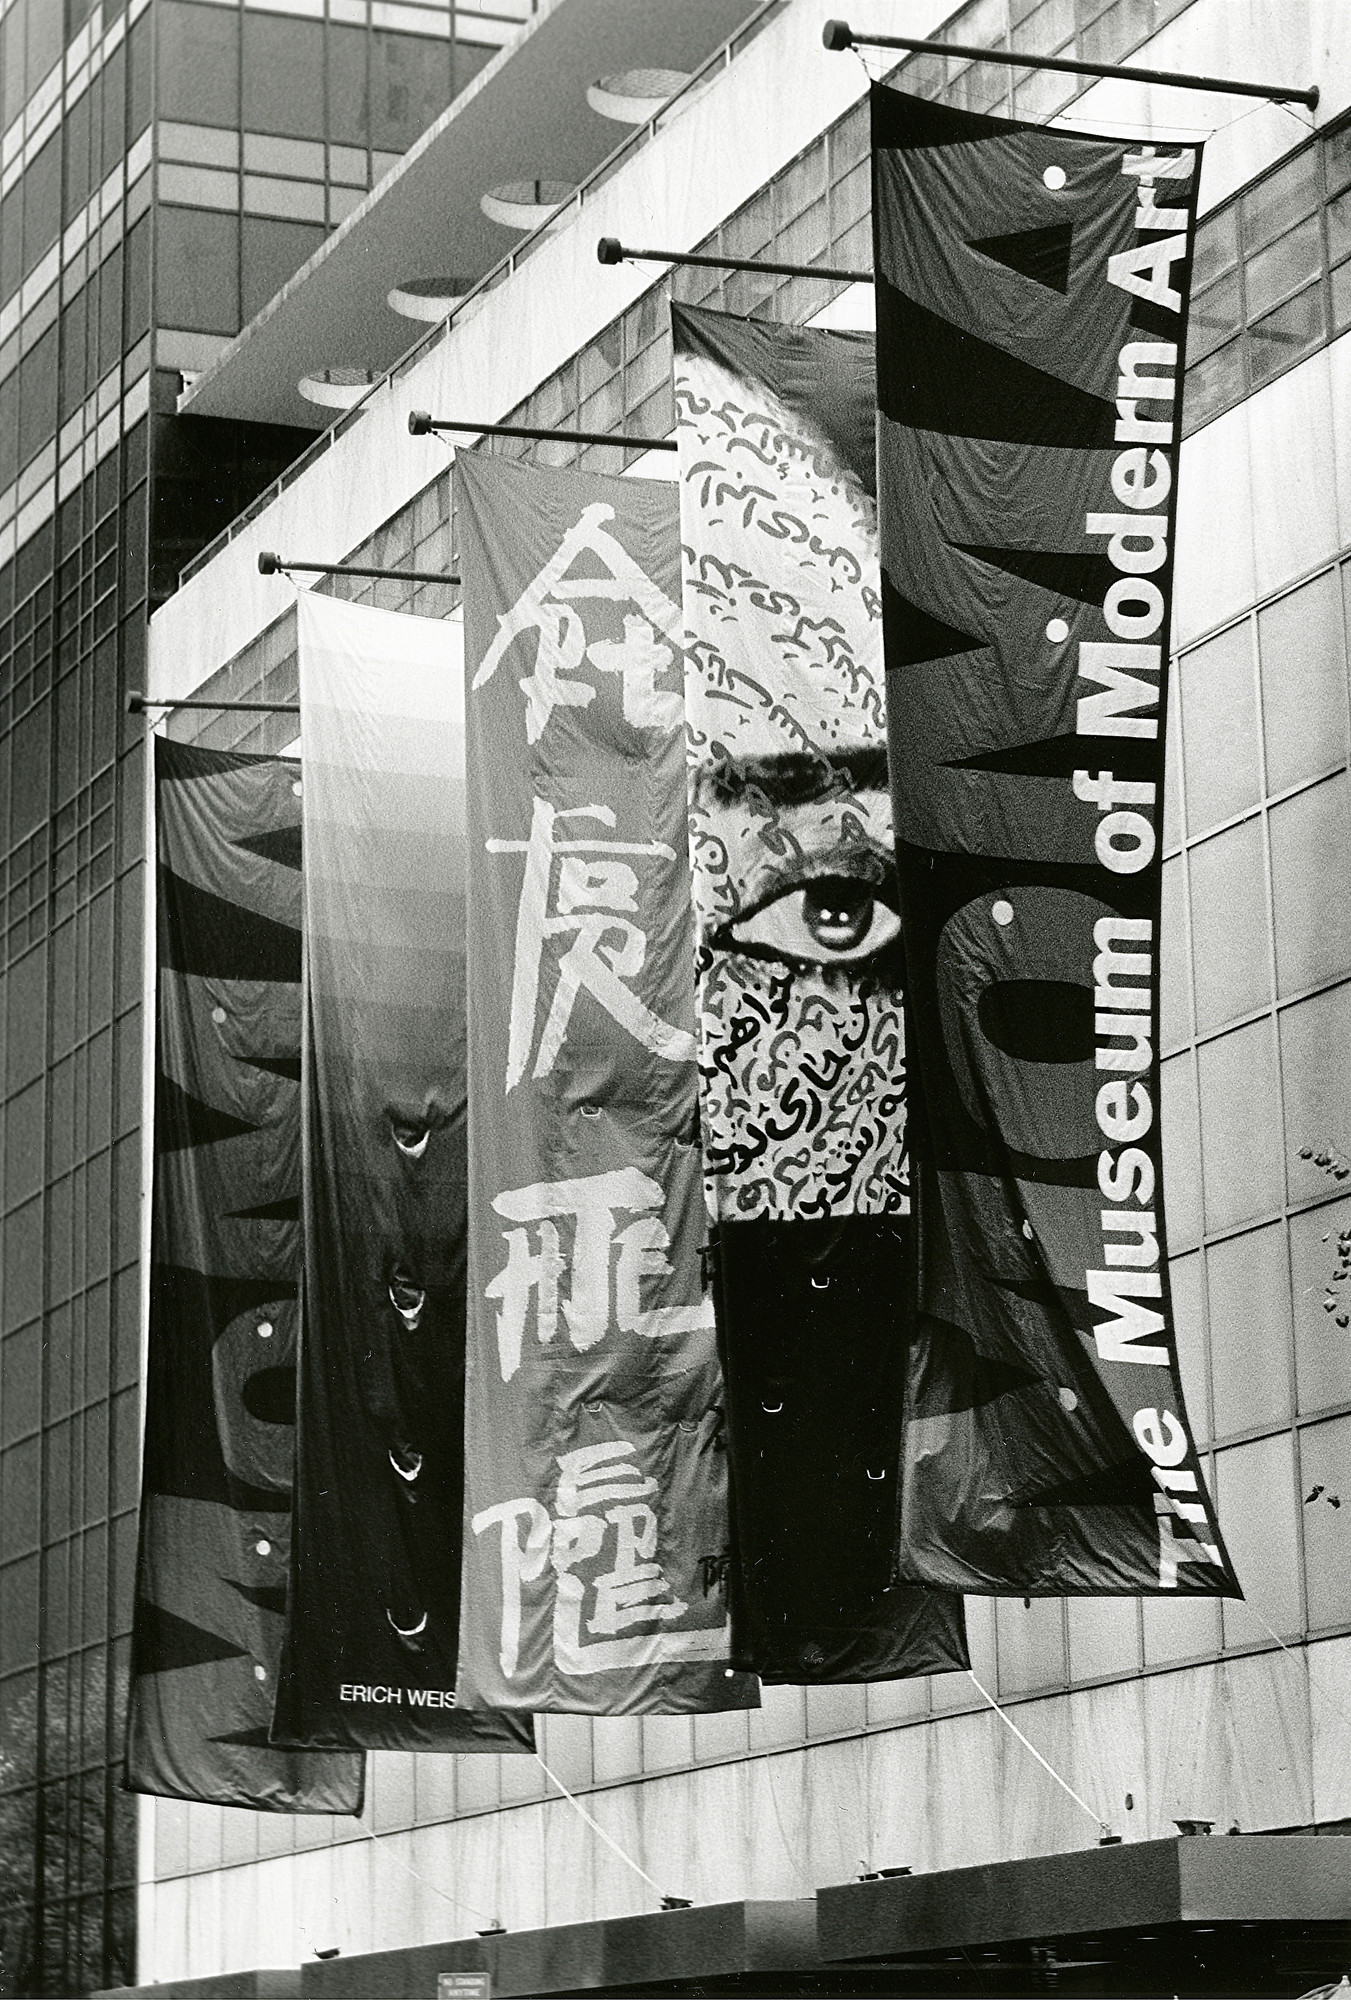 Installation view of Projects 70: Xu Bing, Shirin Neshat, Simon Patterson (Banners Project, Series 1) at The Museum of Modern Art, New York